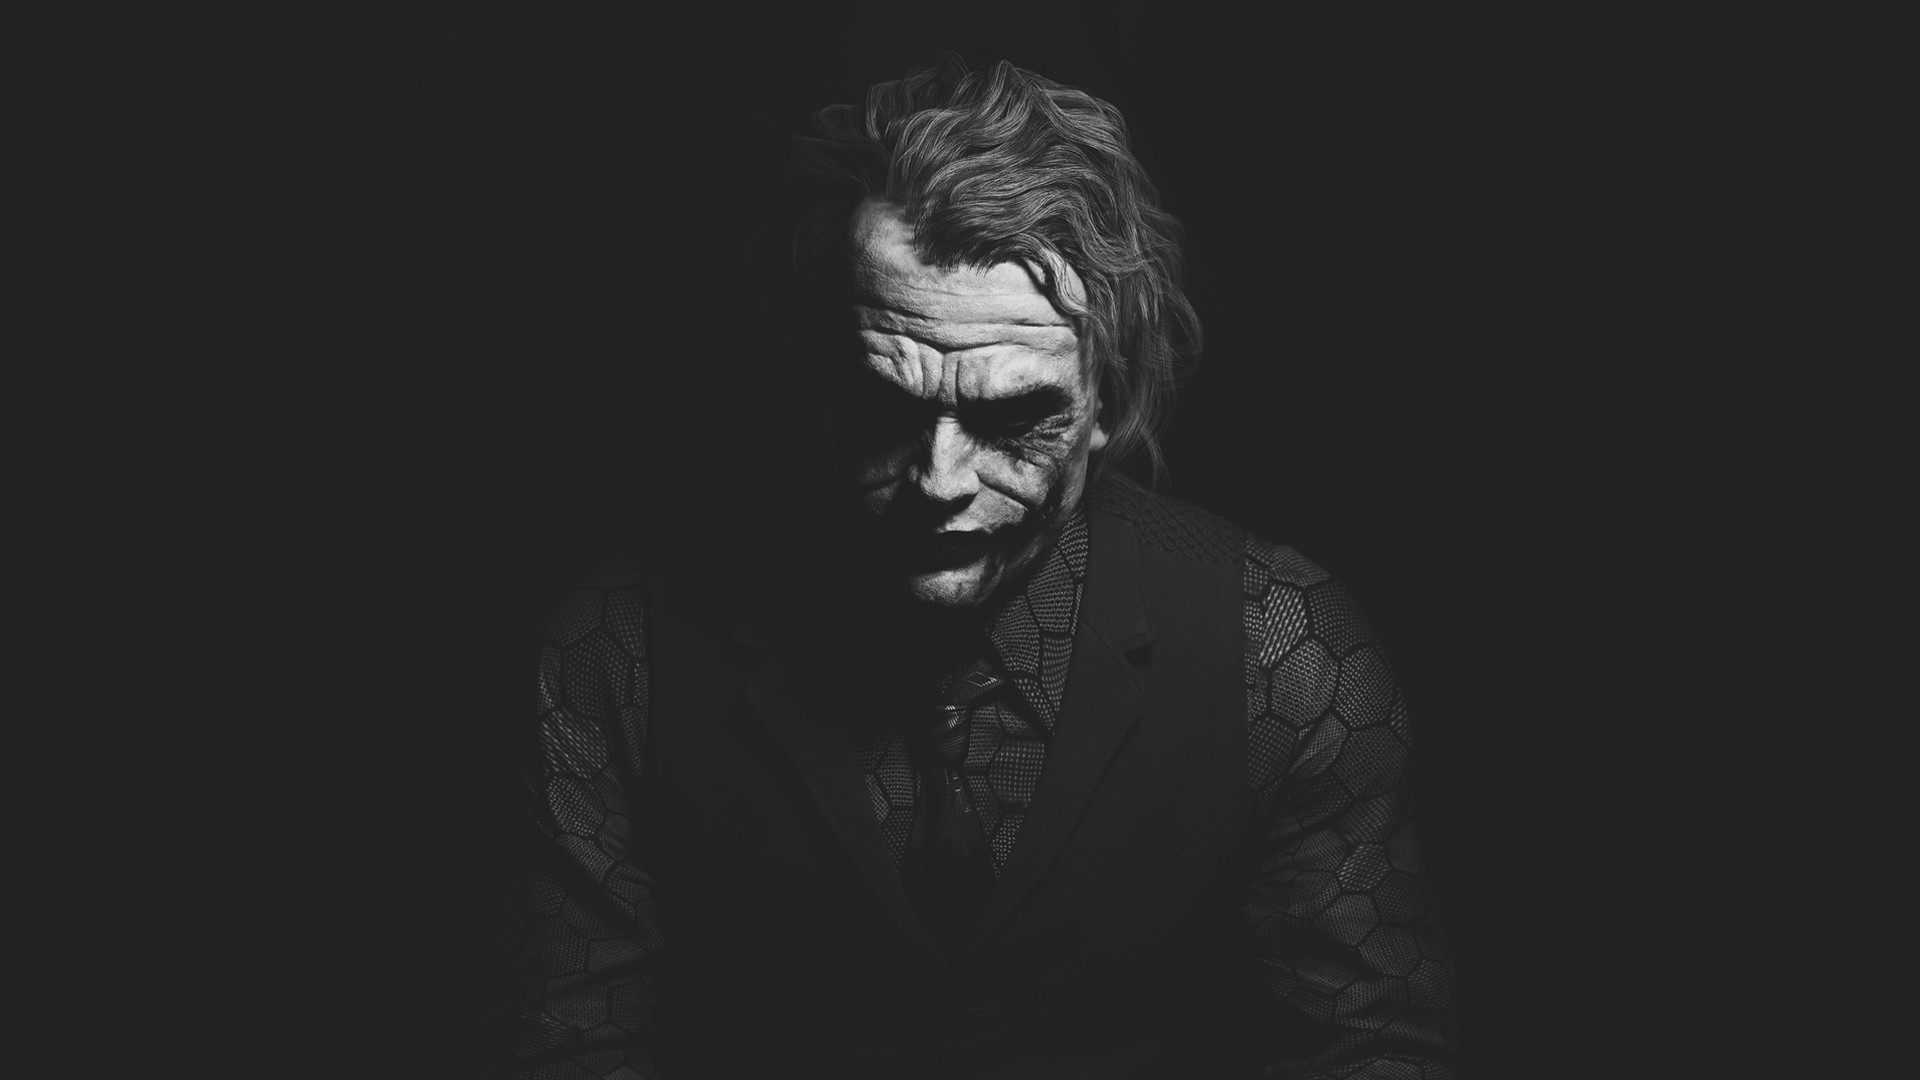 Joker 2 hd movies 4k wallpapers images backgrounds for Immagini joker hd